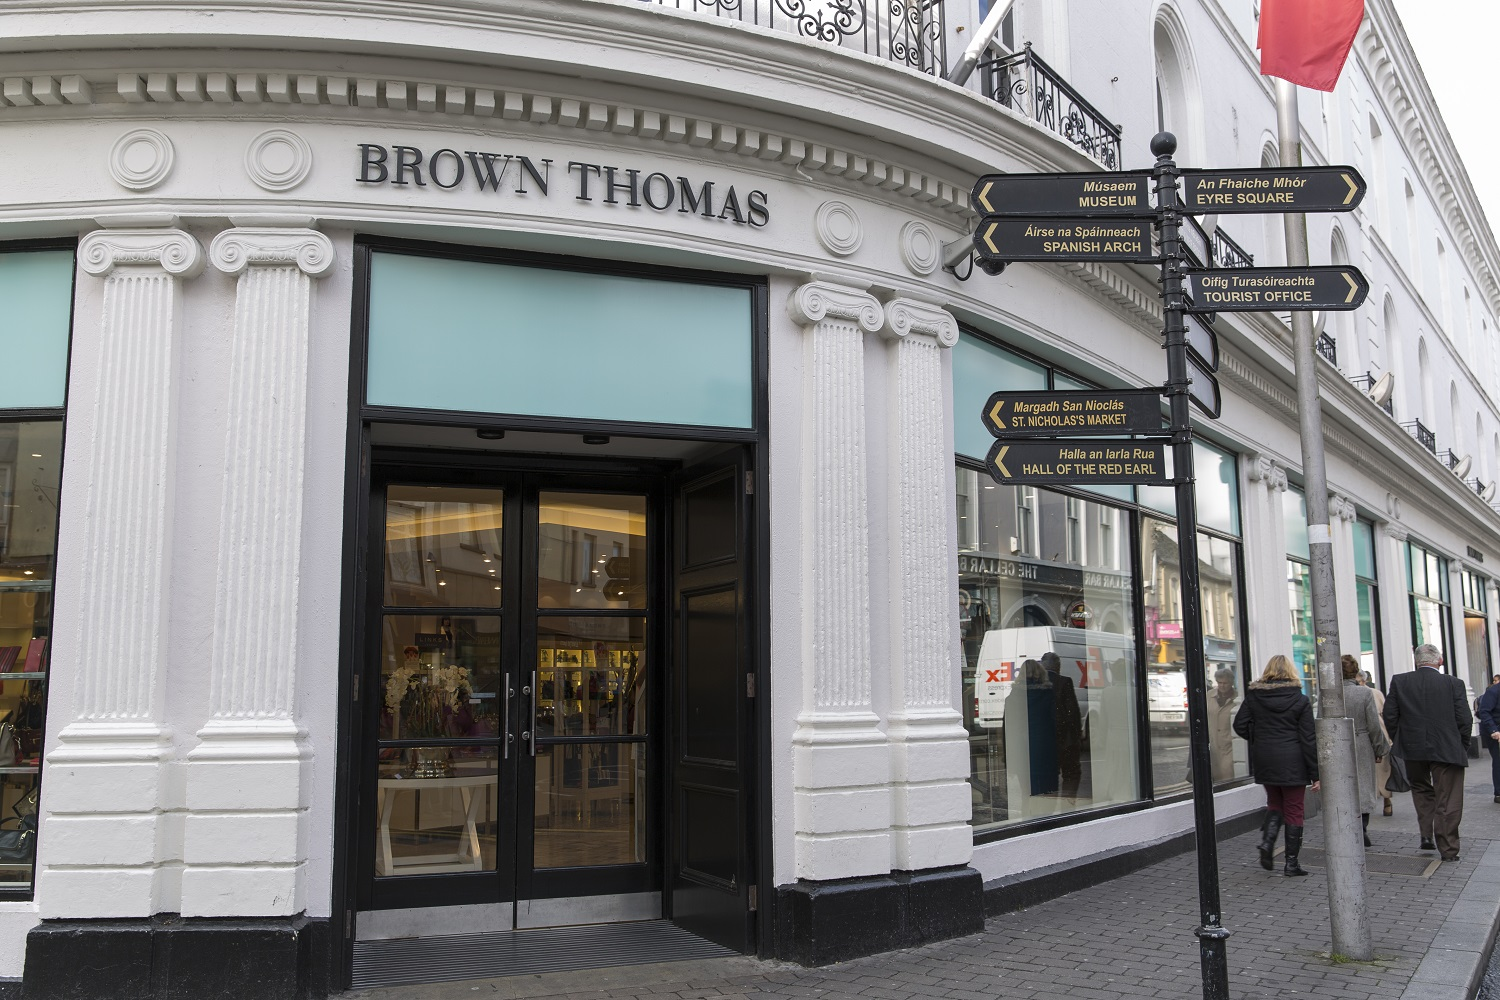 75% Lighting Savings for Brown Thomas after LED Lighting Upgrade - 8,500 lights, 256 carbon tonnes and 1.4 million kWhs